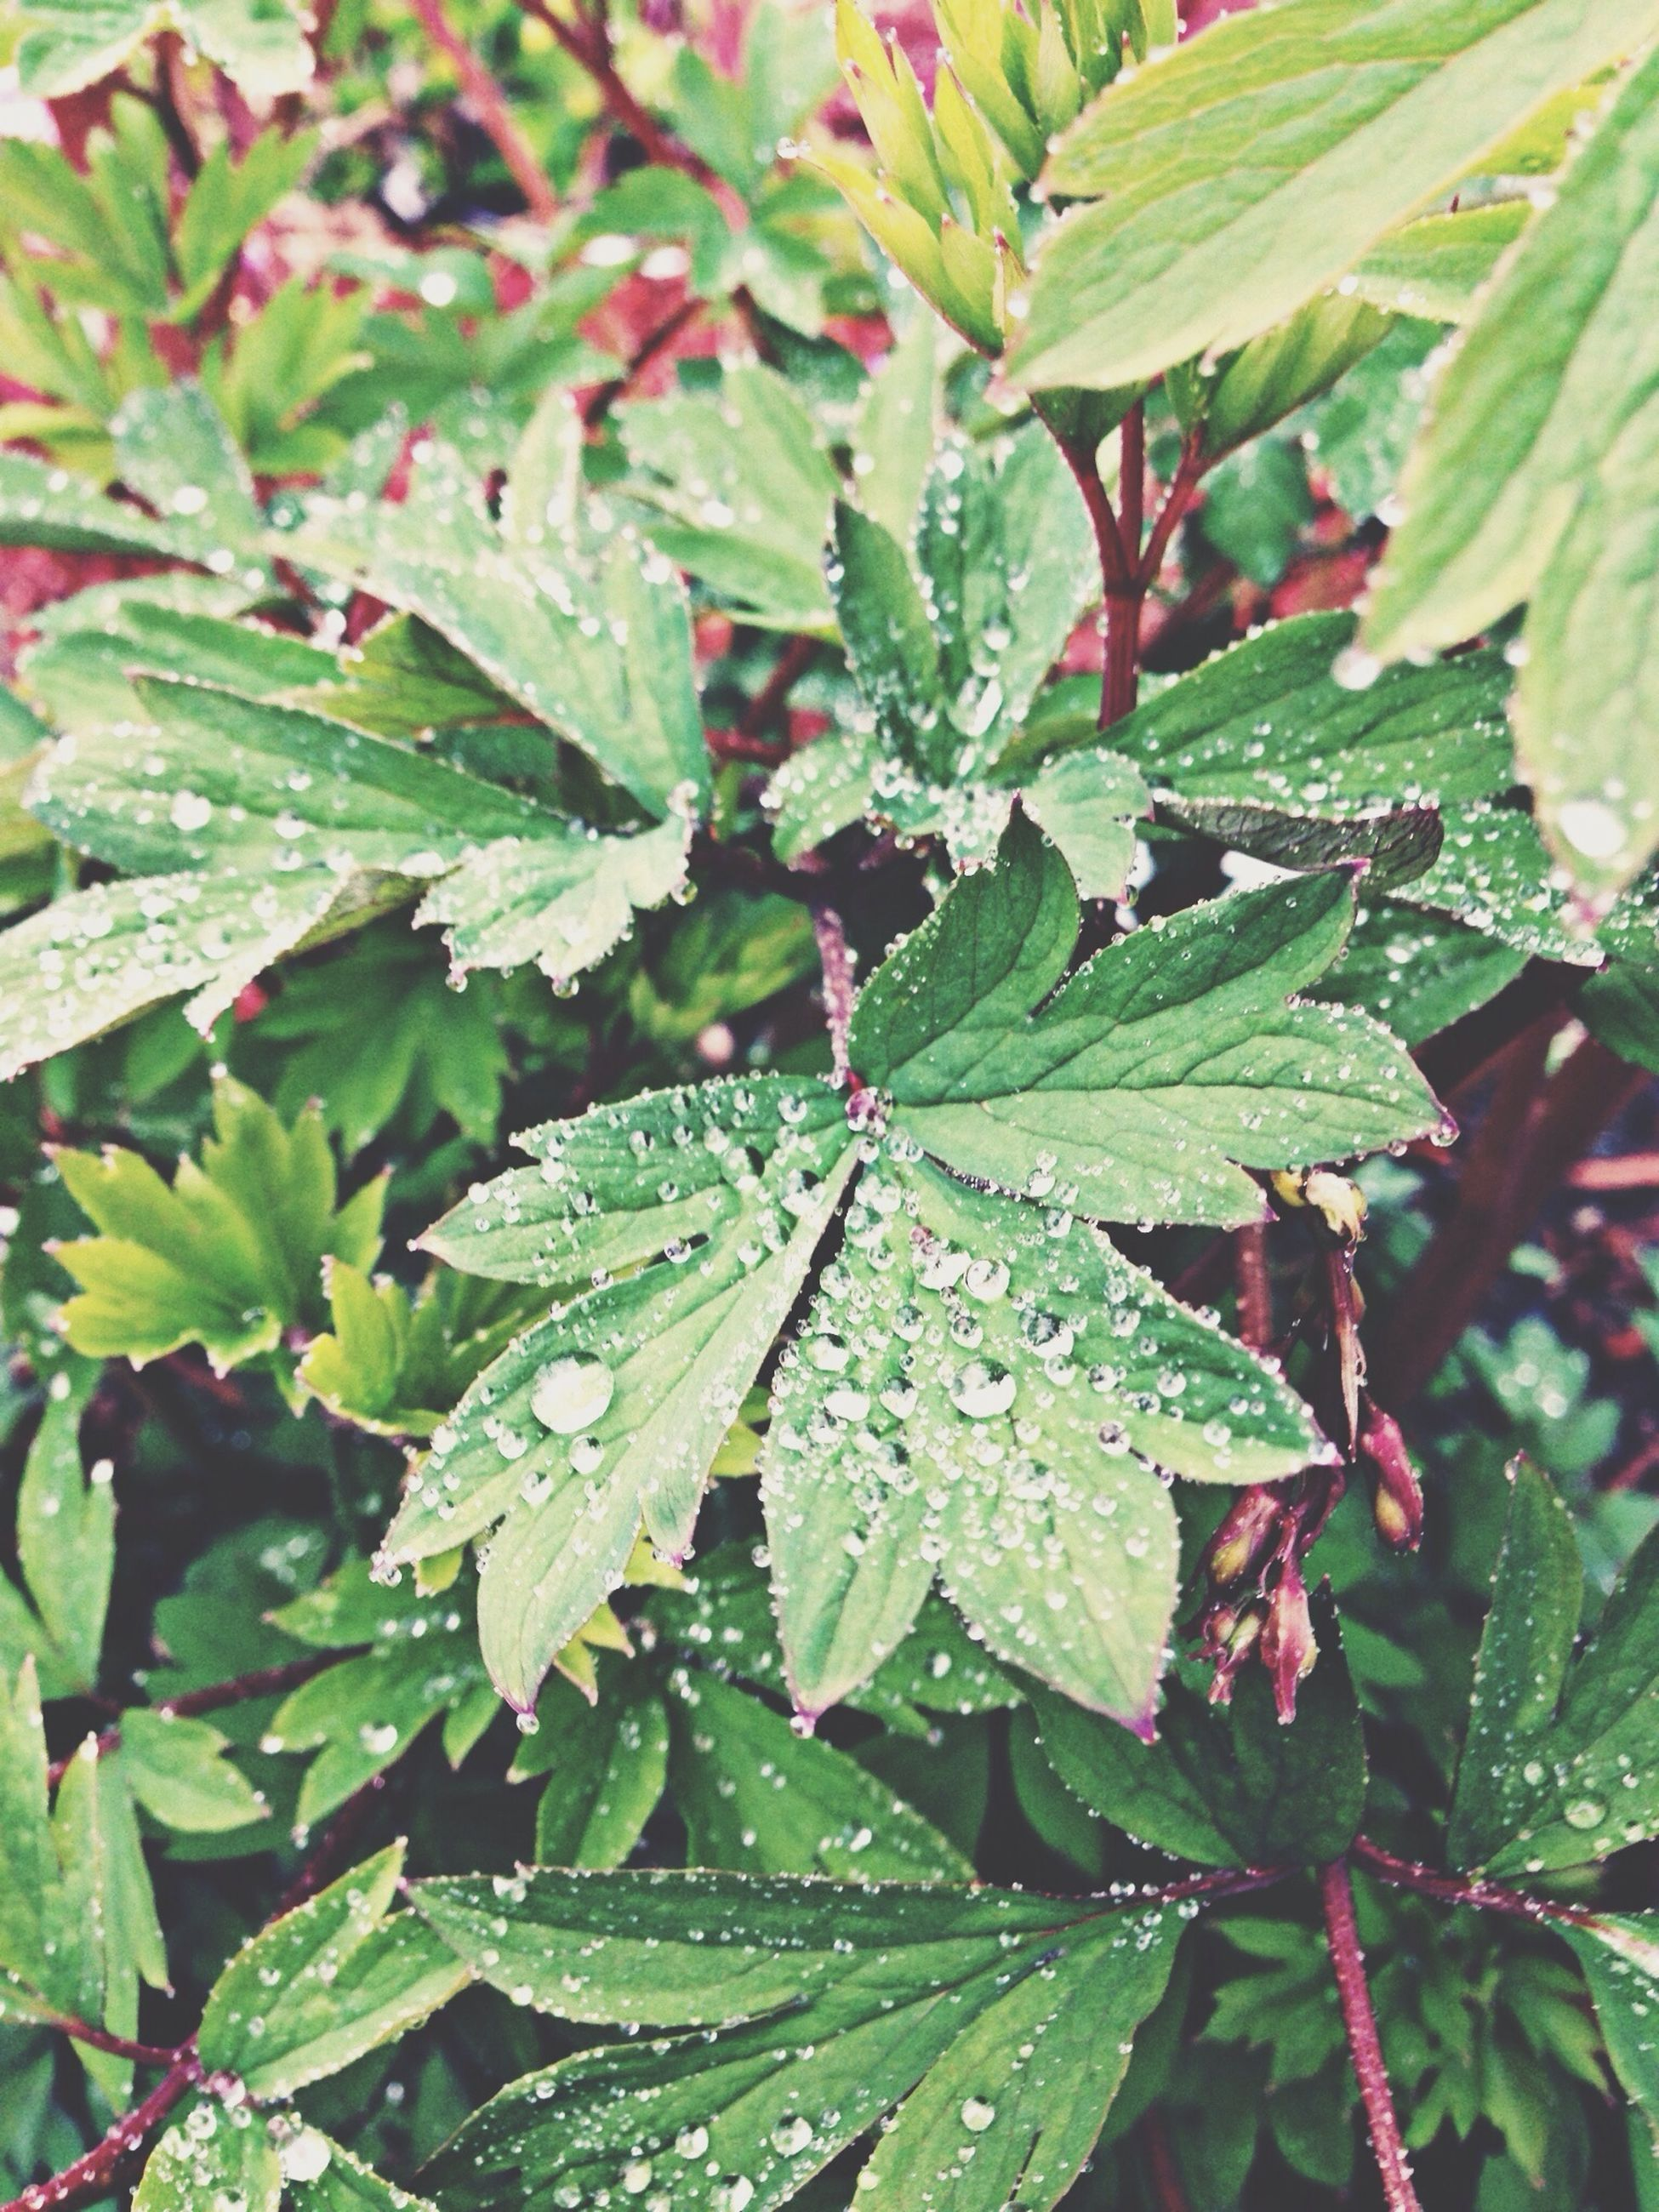 leaf, growth, green color, close-up, nature, leaf vein, plant, leaves, freshness, beauty in nature, focus on foreground, branch, full frame, day, tranquility, outdoors, no people, drop, backgrounds, wet